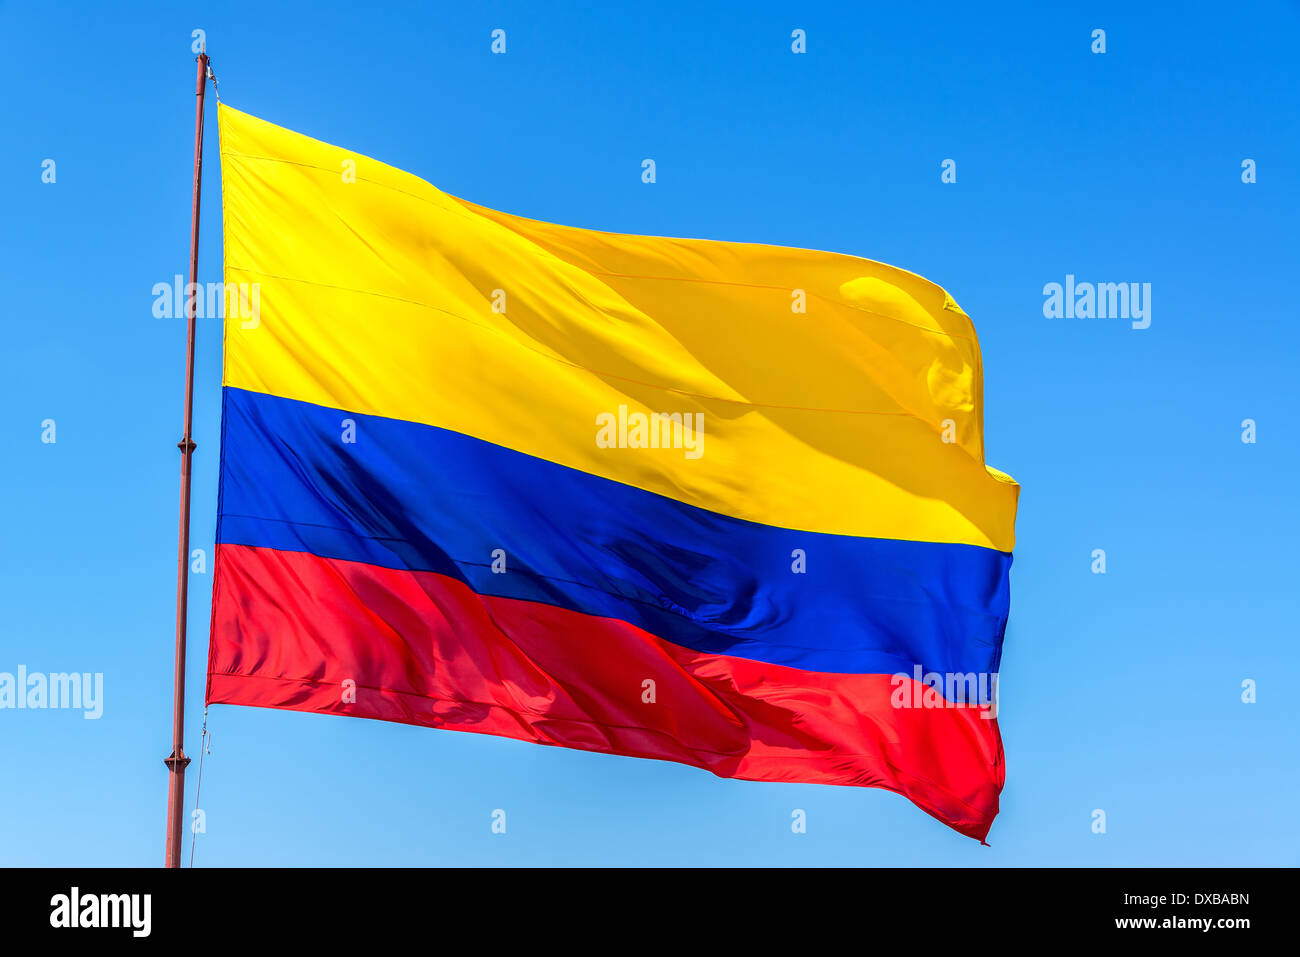 Resplendent Colombian flag waving in the wind set against a beautiful blue sky - Stock Image